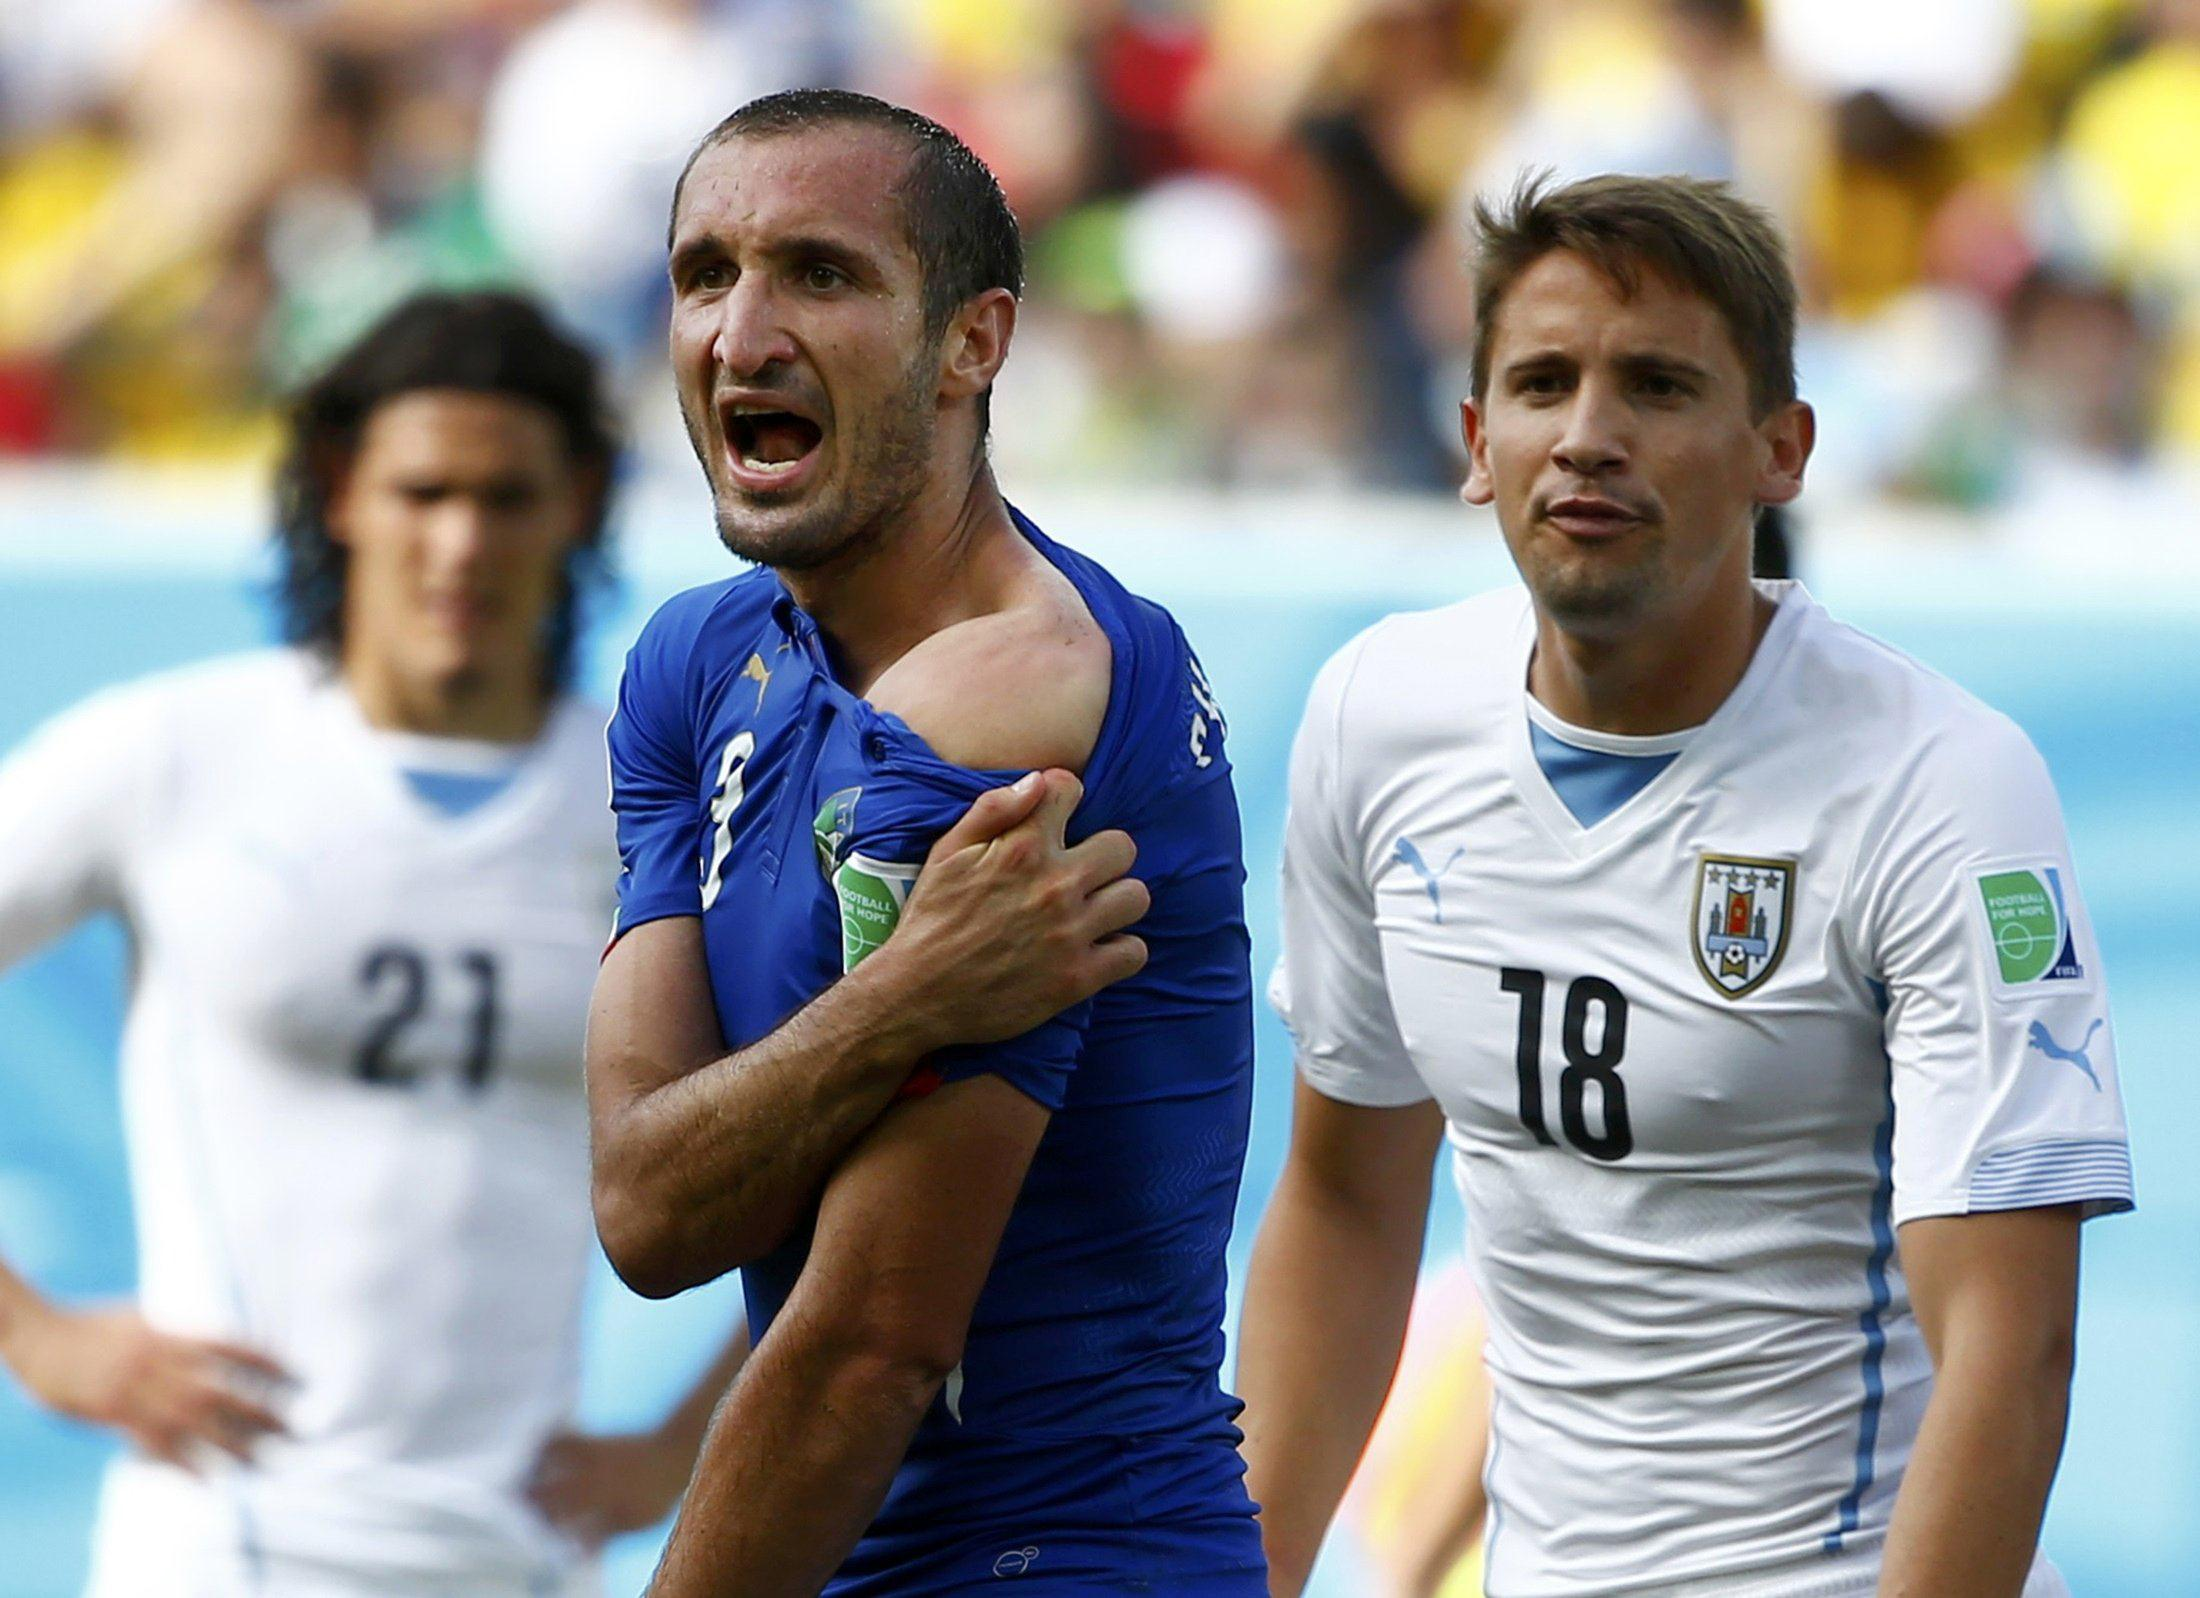 Image: Italy's Giorgio Chiellini shows his shoulder, claiming he was bitten by Uruguay's Luis Suarez